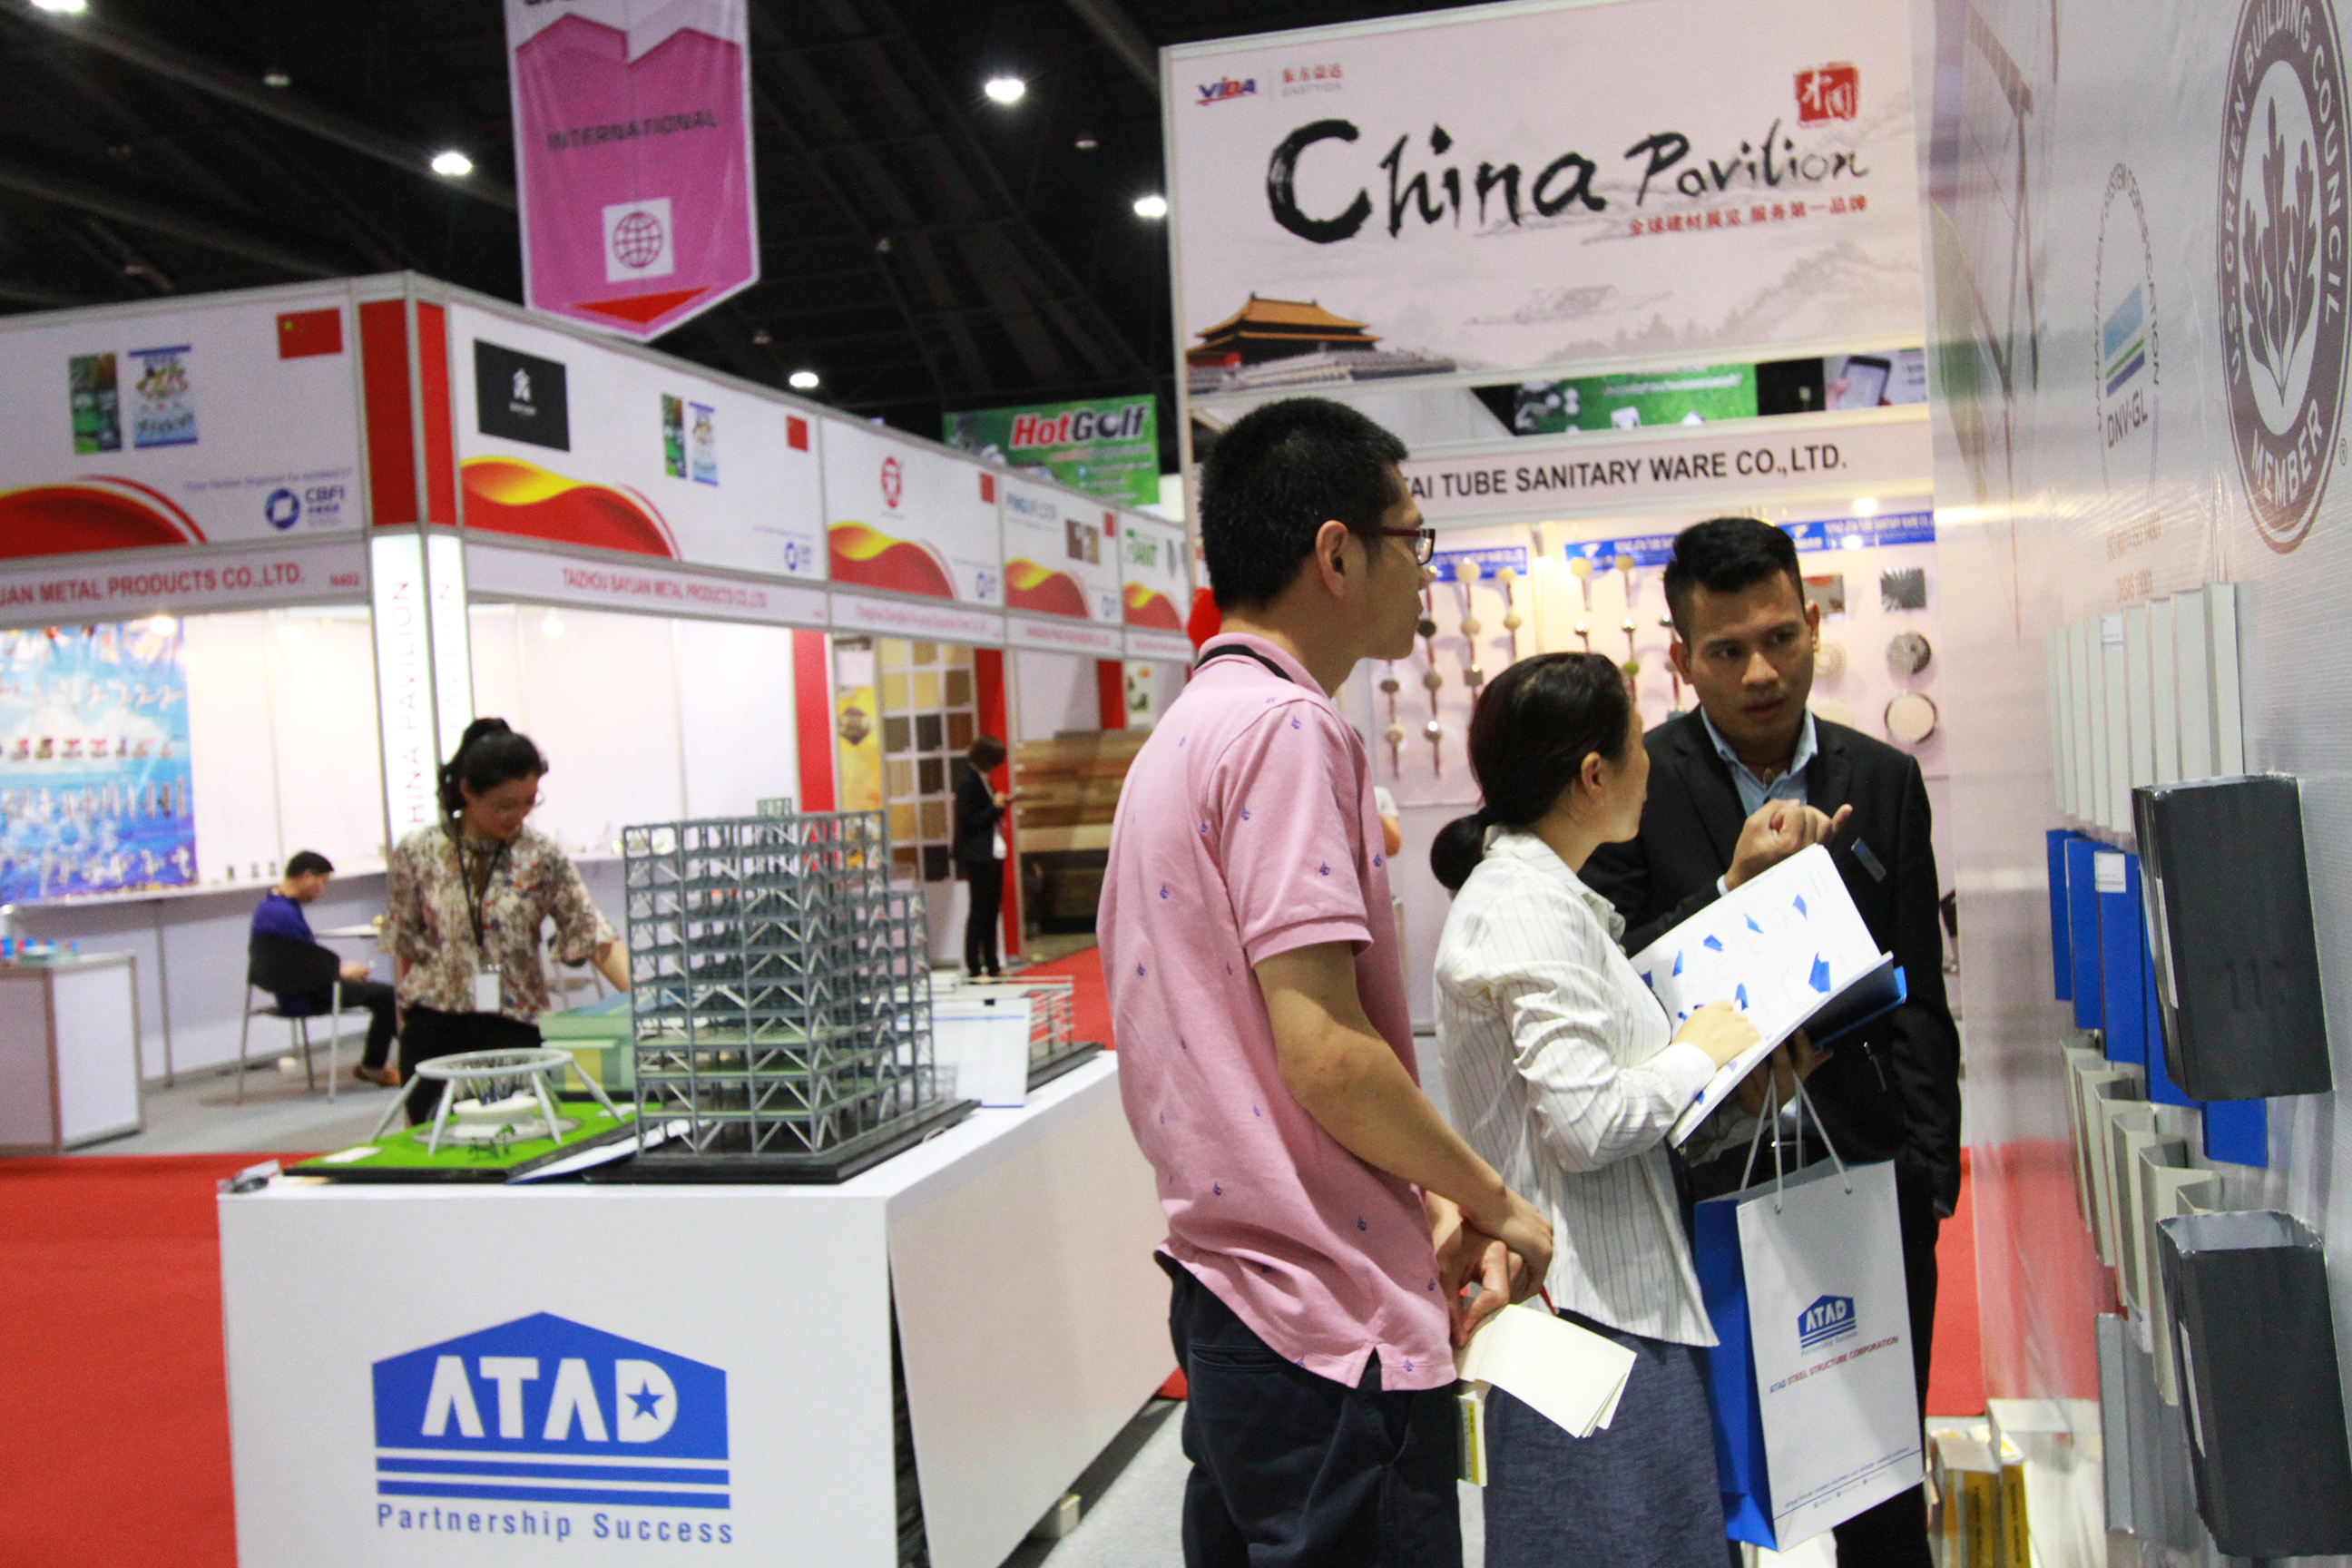 ATAD team answered questions about ATAD products and services 2